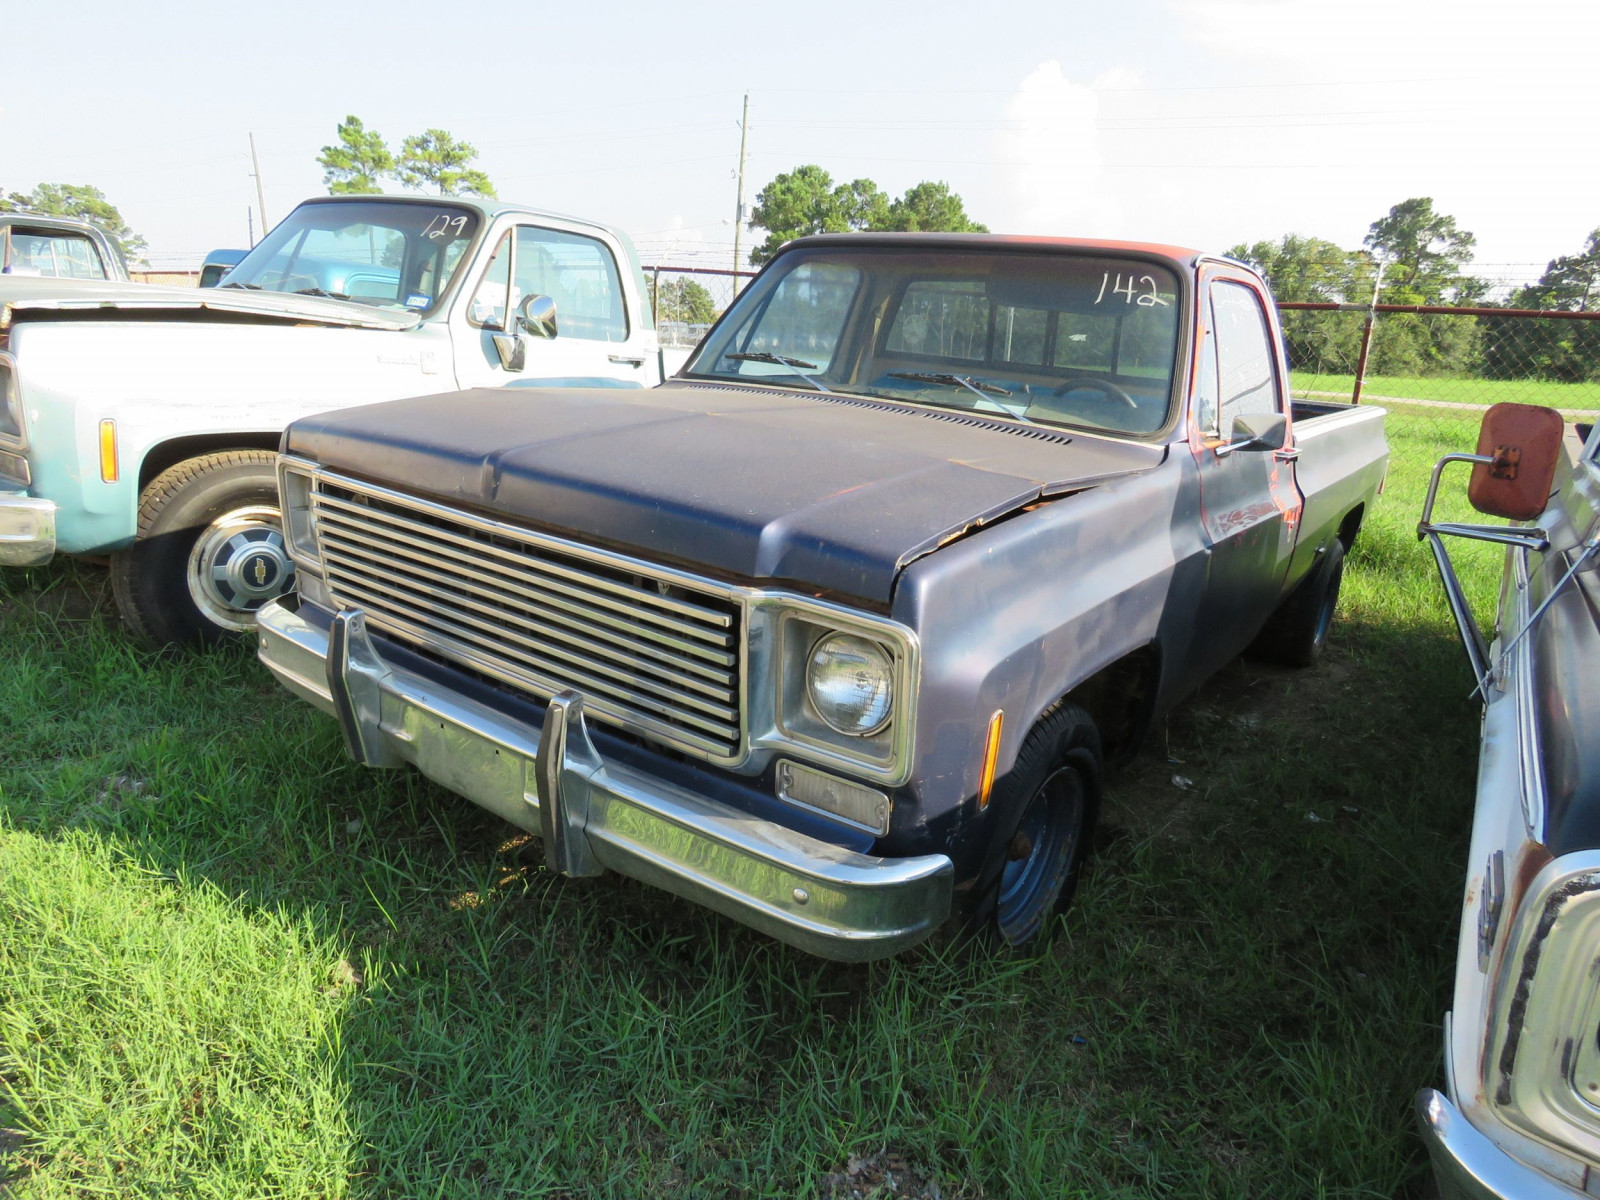 1978 Chevrolet Big 10 Pickup - Image 1